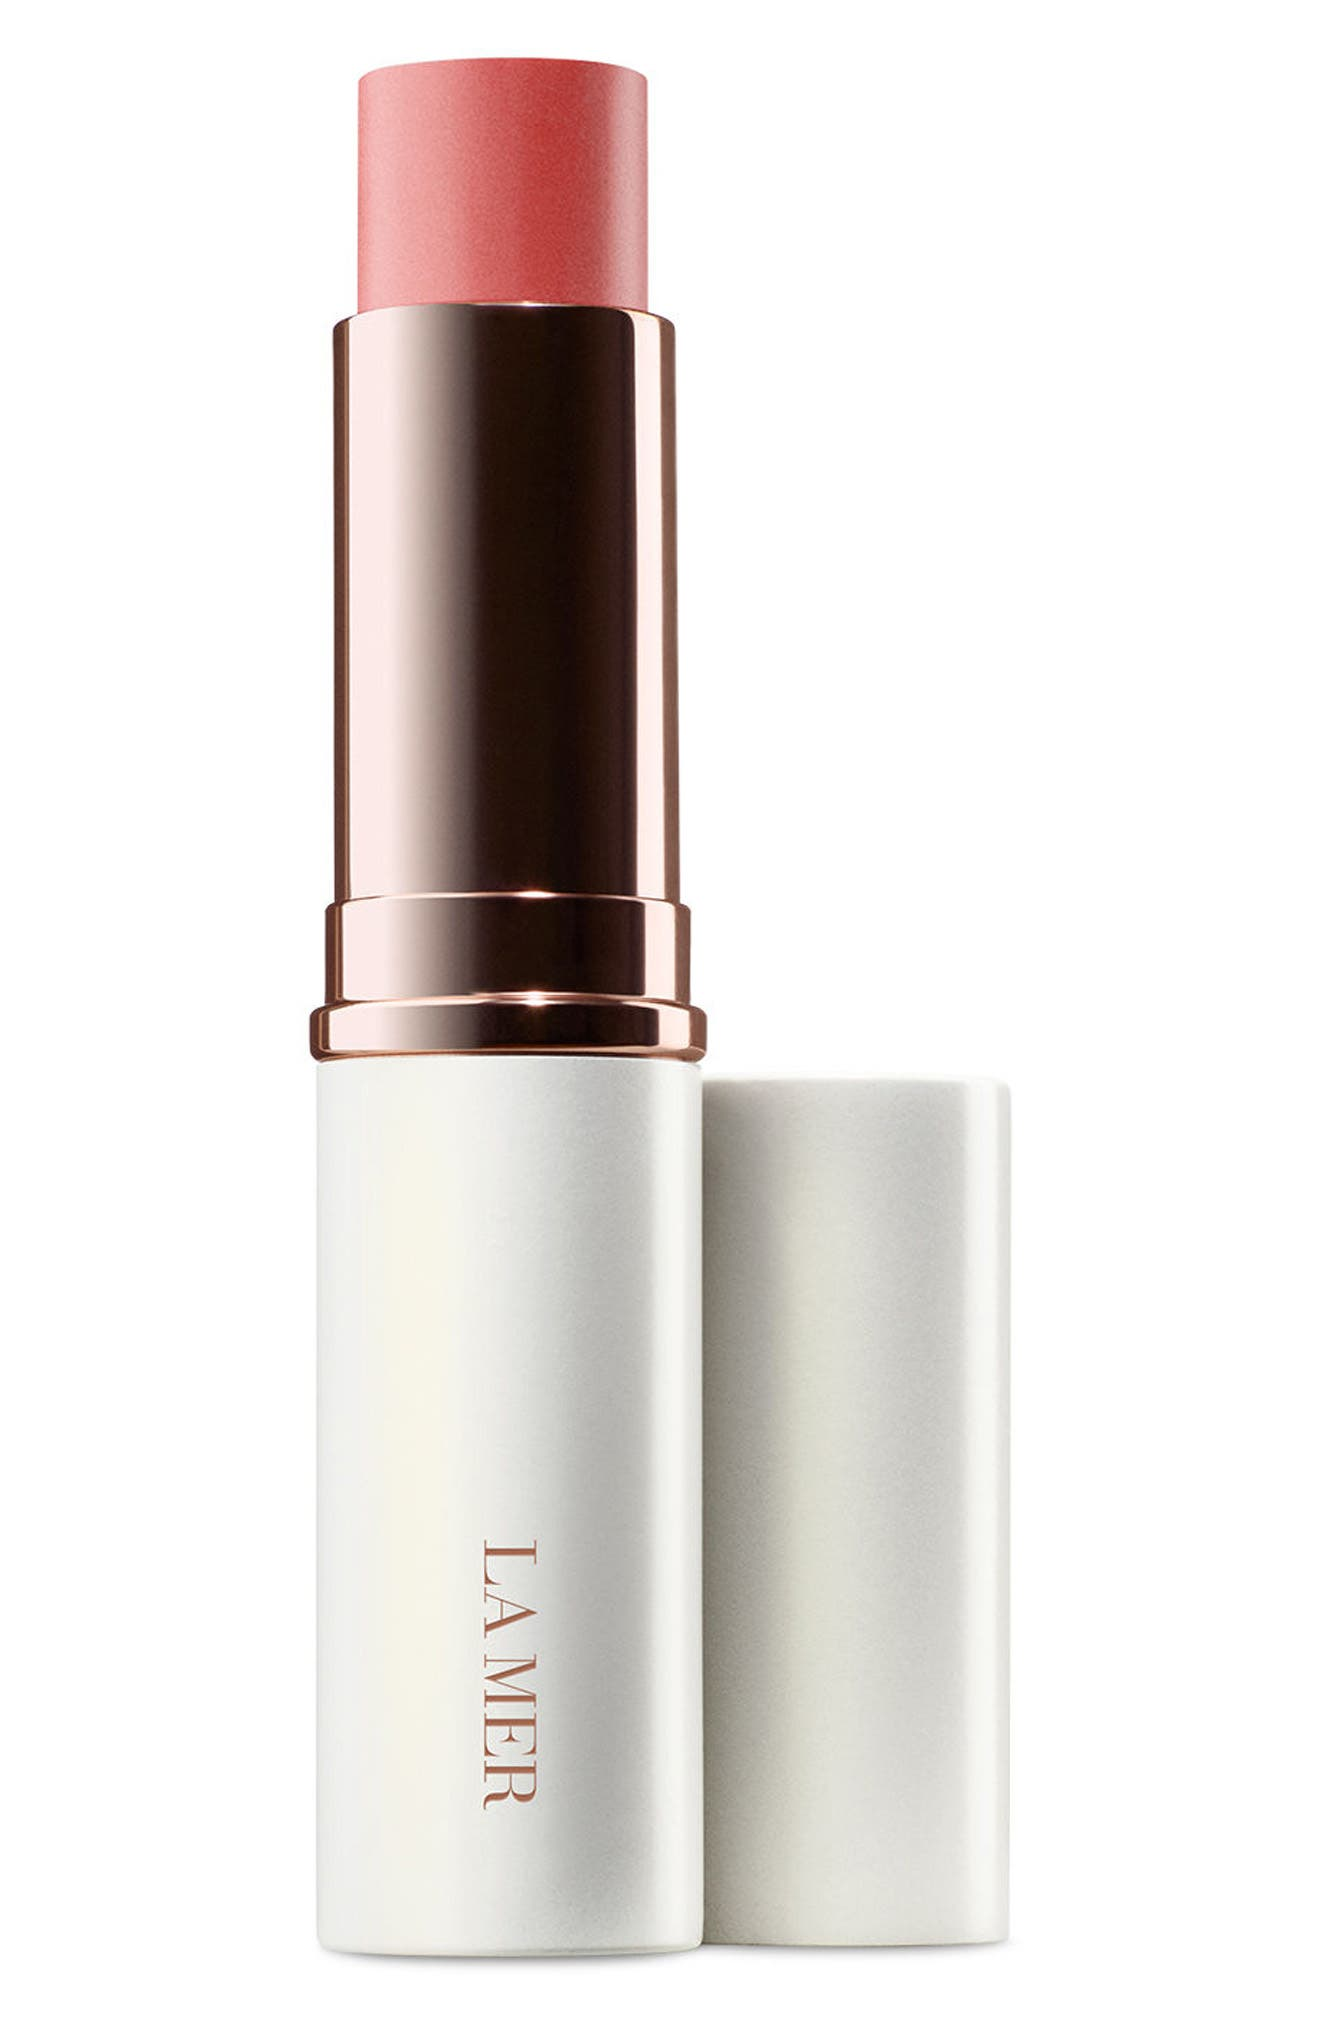 La Mer The Lip & Cheek Glow